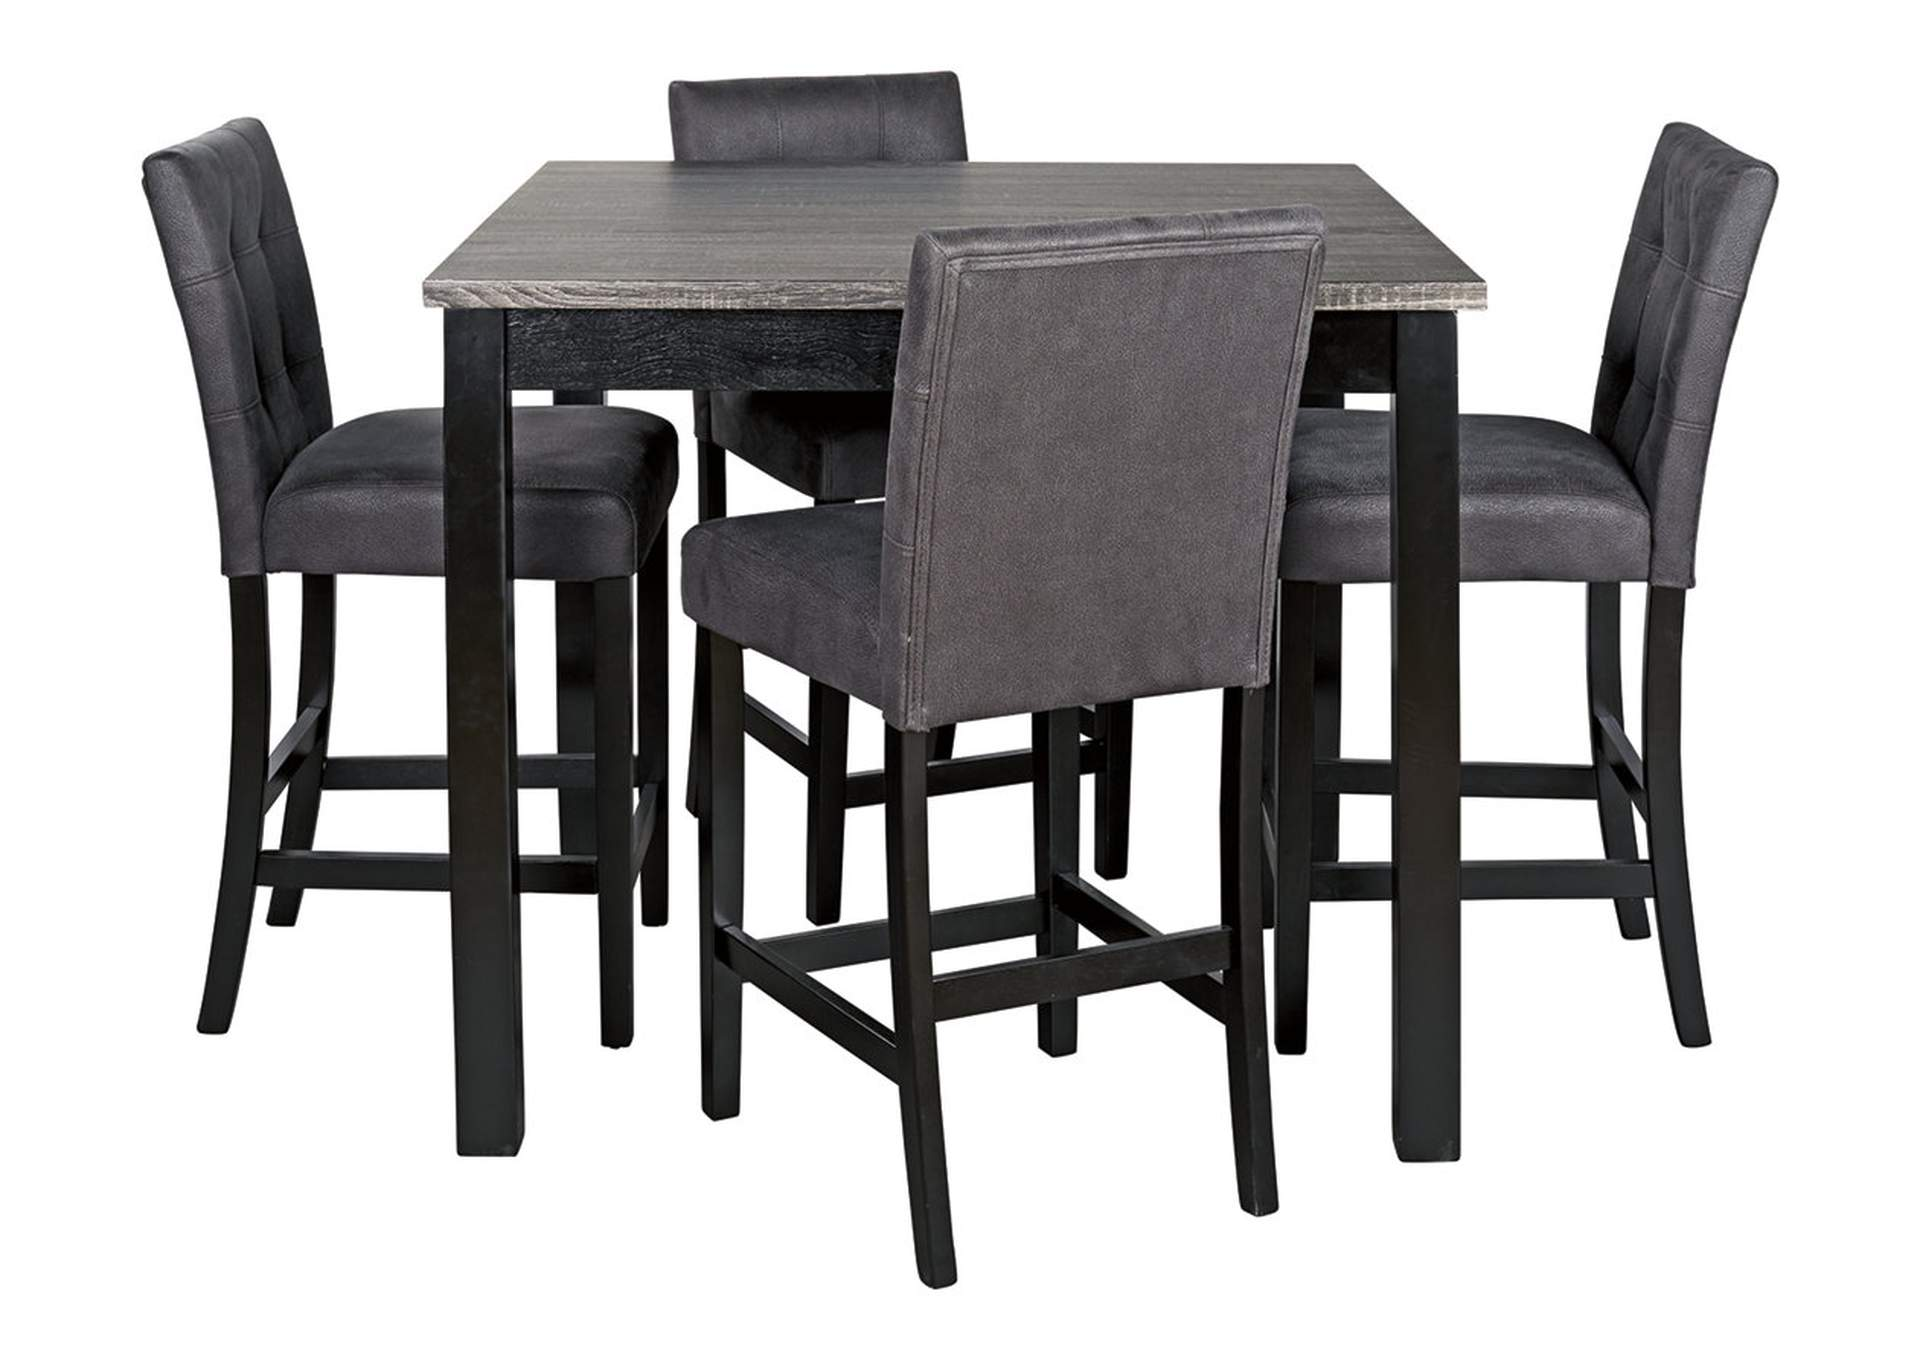 Garvine Two-tone Counter Height Dining Room Table and Bar Stools (Set of 5),Signature Design By Ashley